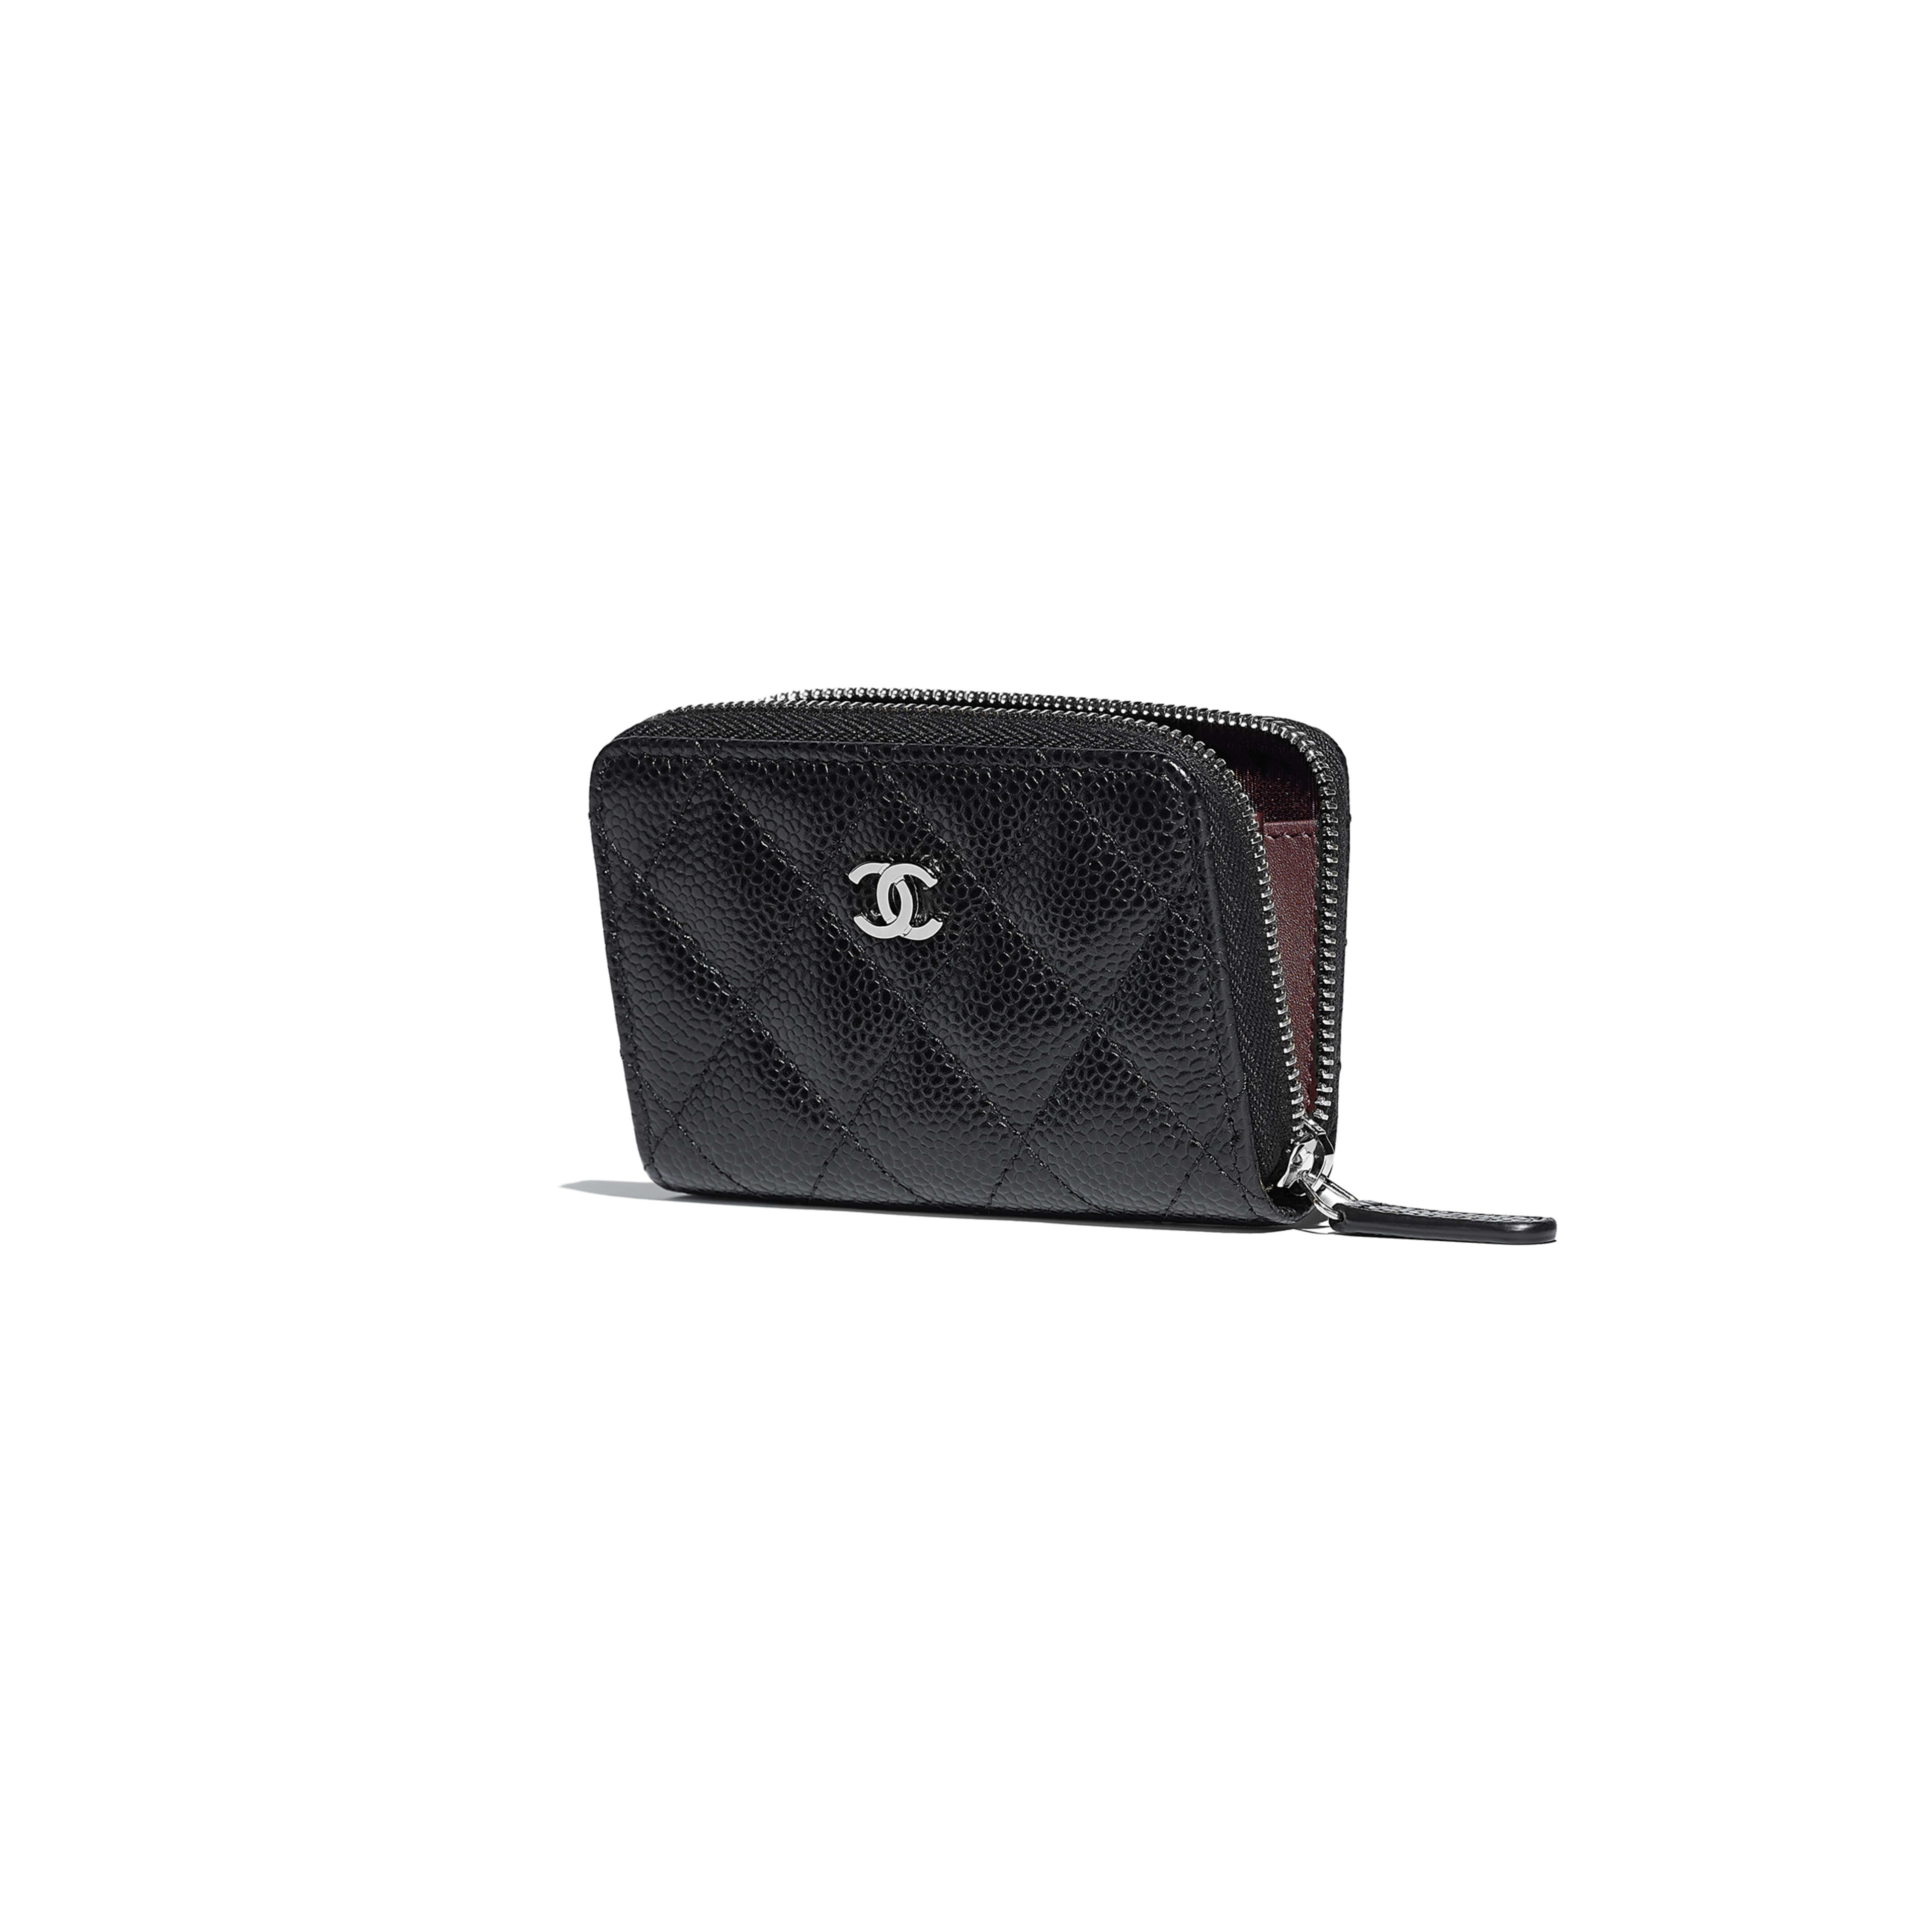 Classic Zipped Coin Purse - Black - Grained Calfskin & Silver-Tone Metal - Other view - see full sized version